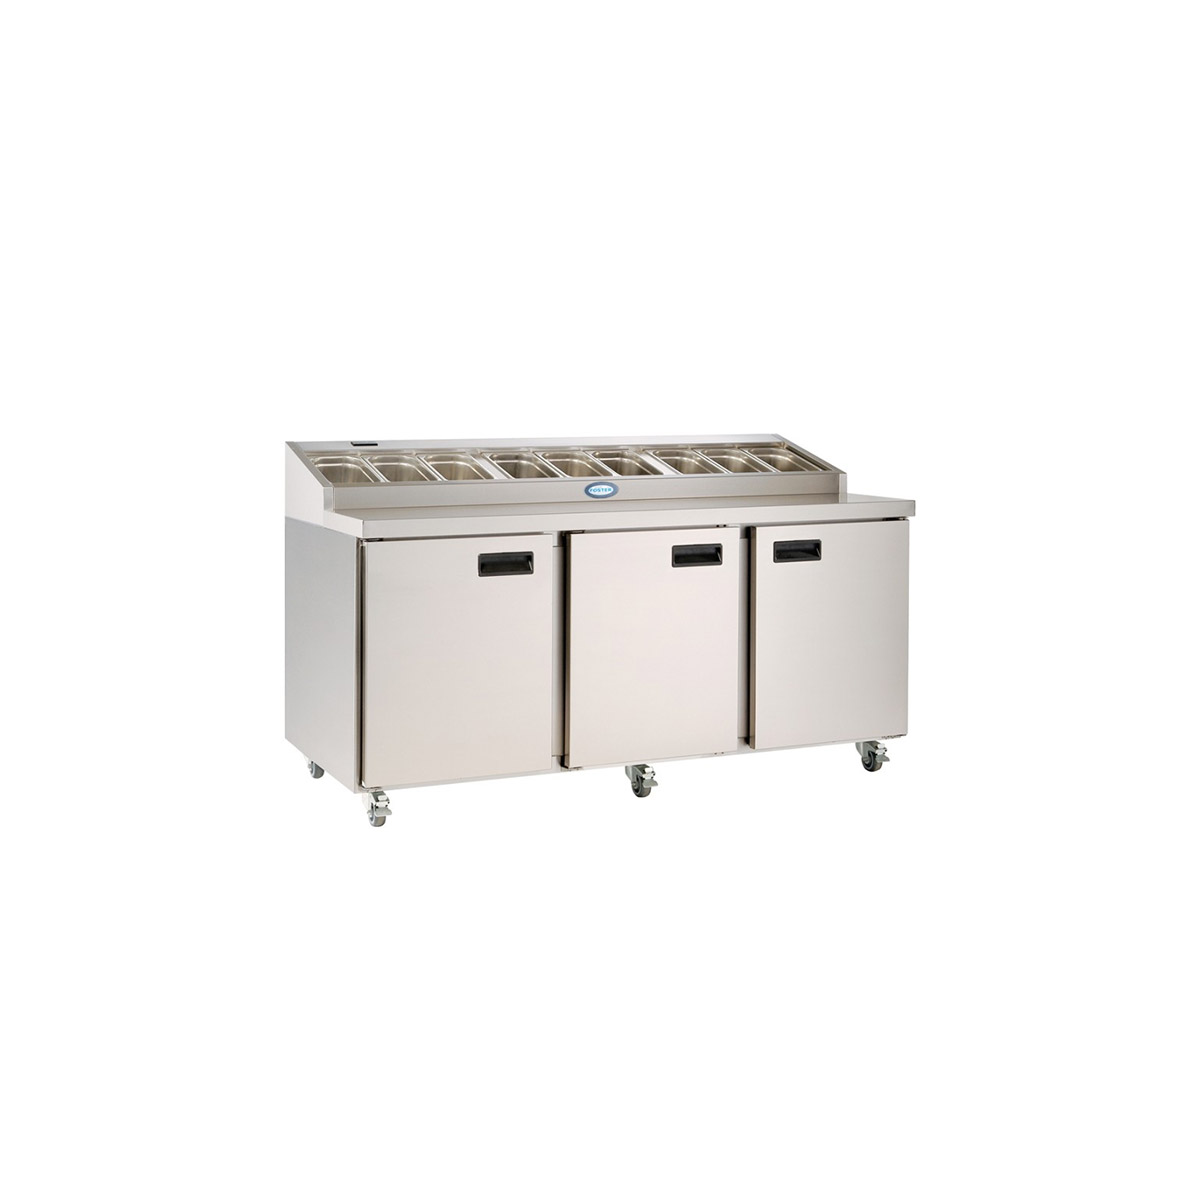 Foster FPS3HR 420 Ltr Stainless Steel Refrigerated Prep Counter